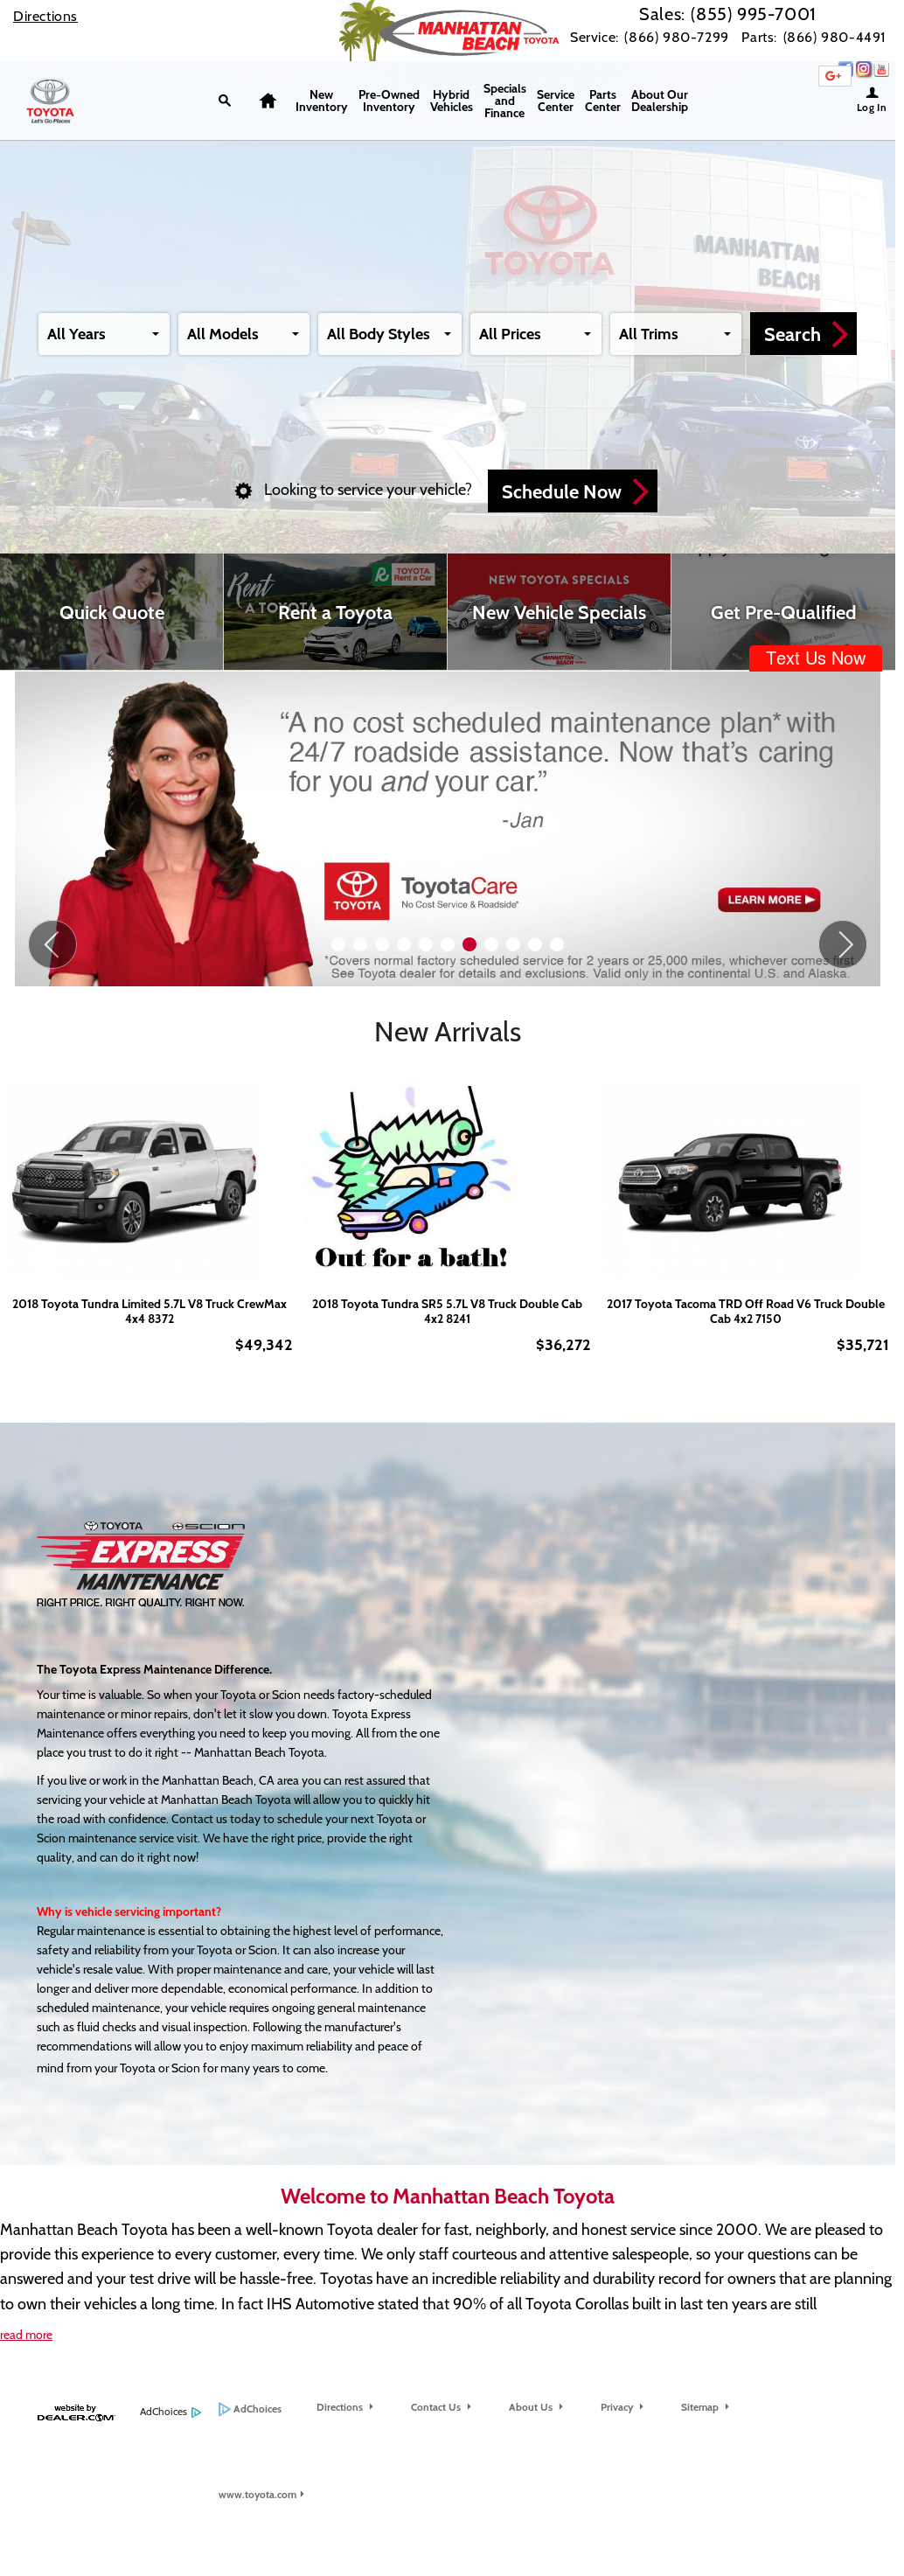 Manhattan Beach Toyota Website History